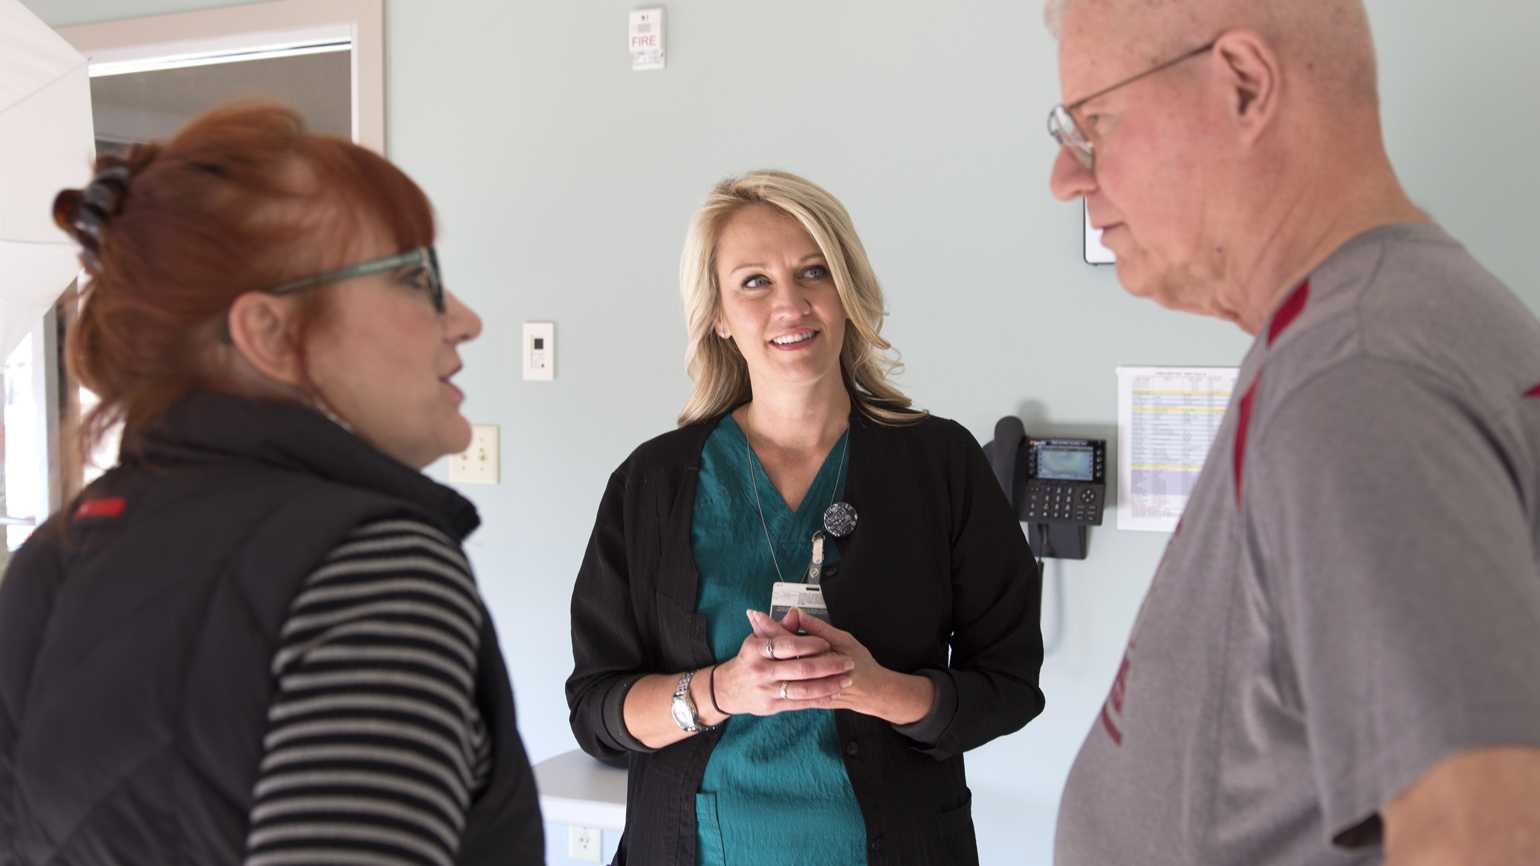 Everette in discussion with his wife Karla and a doctor.